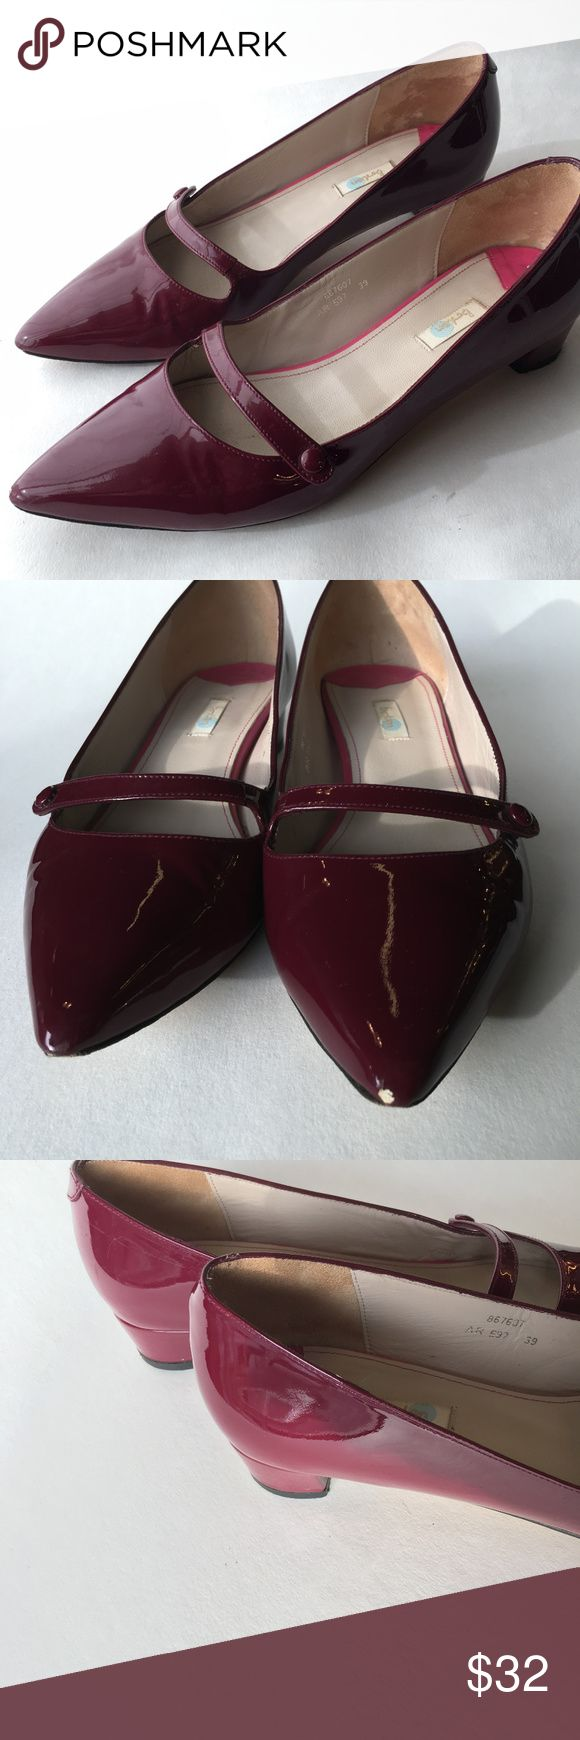 Boden Maroon Patent Leather Pumps - Low Heel Patent Leather Maroon / Raspberry color low heel shoes.  One strap with a button detail. Condition Very Good, wear to bottom as shown and to the tip of one shoe (barely noticeable from above).  Leather soles,  chunky heel. Boden Shoes Heels